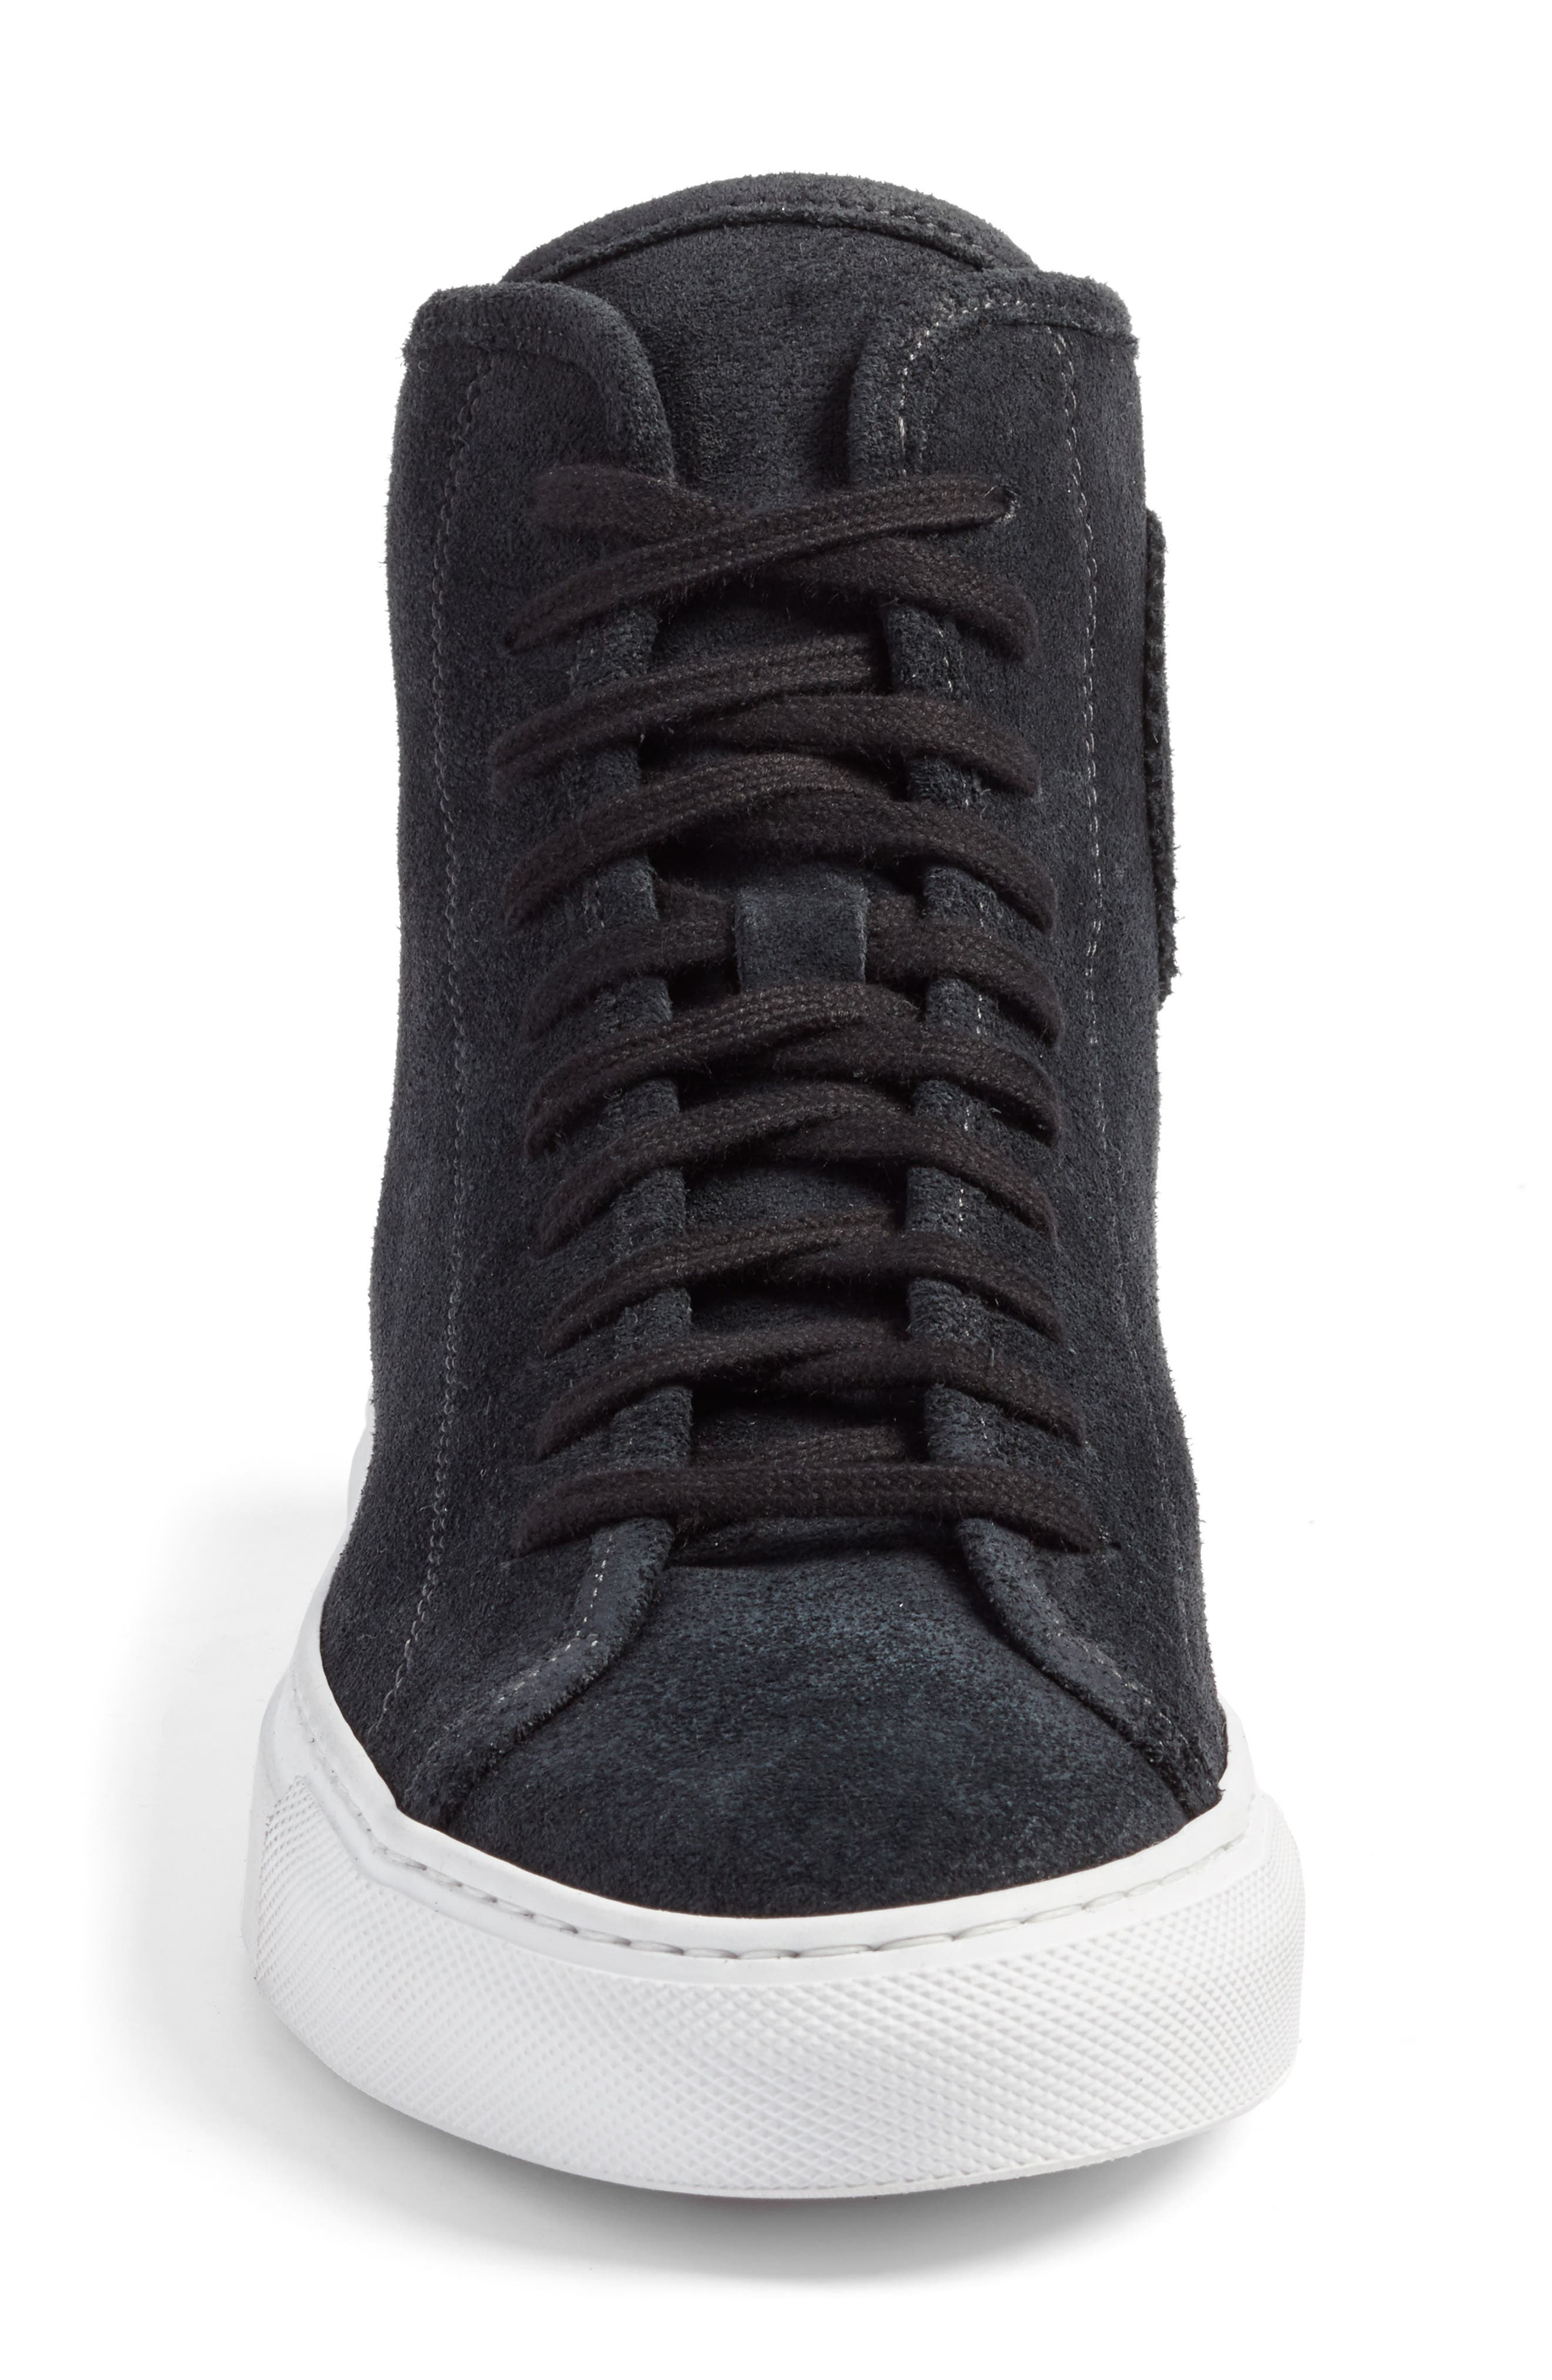 Tournament High Top Sneakers,                             Alternate thumbnail 4, color,